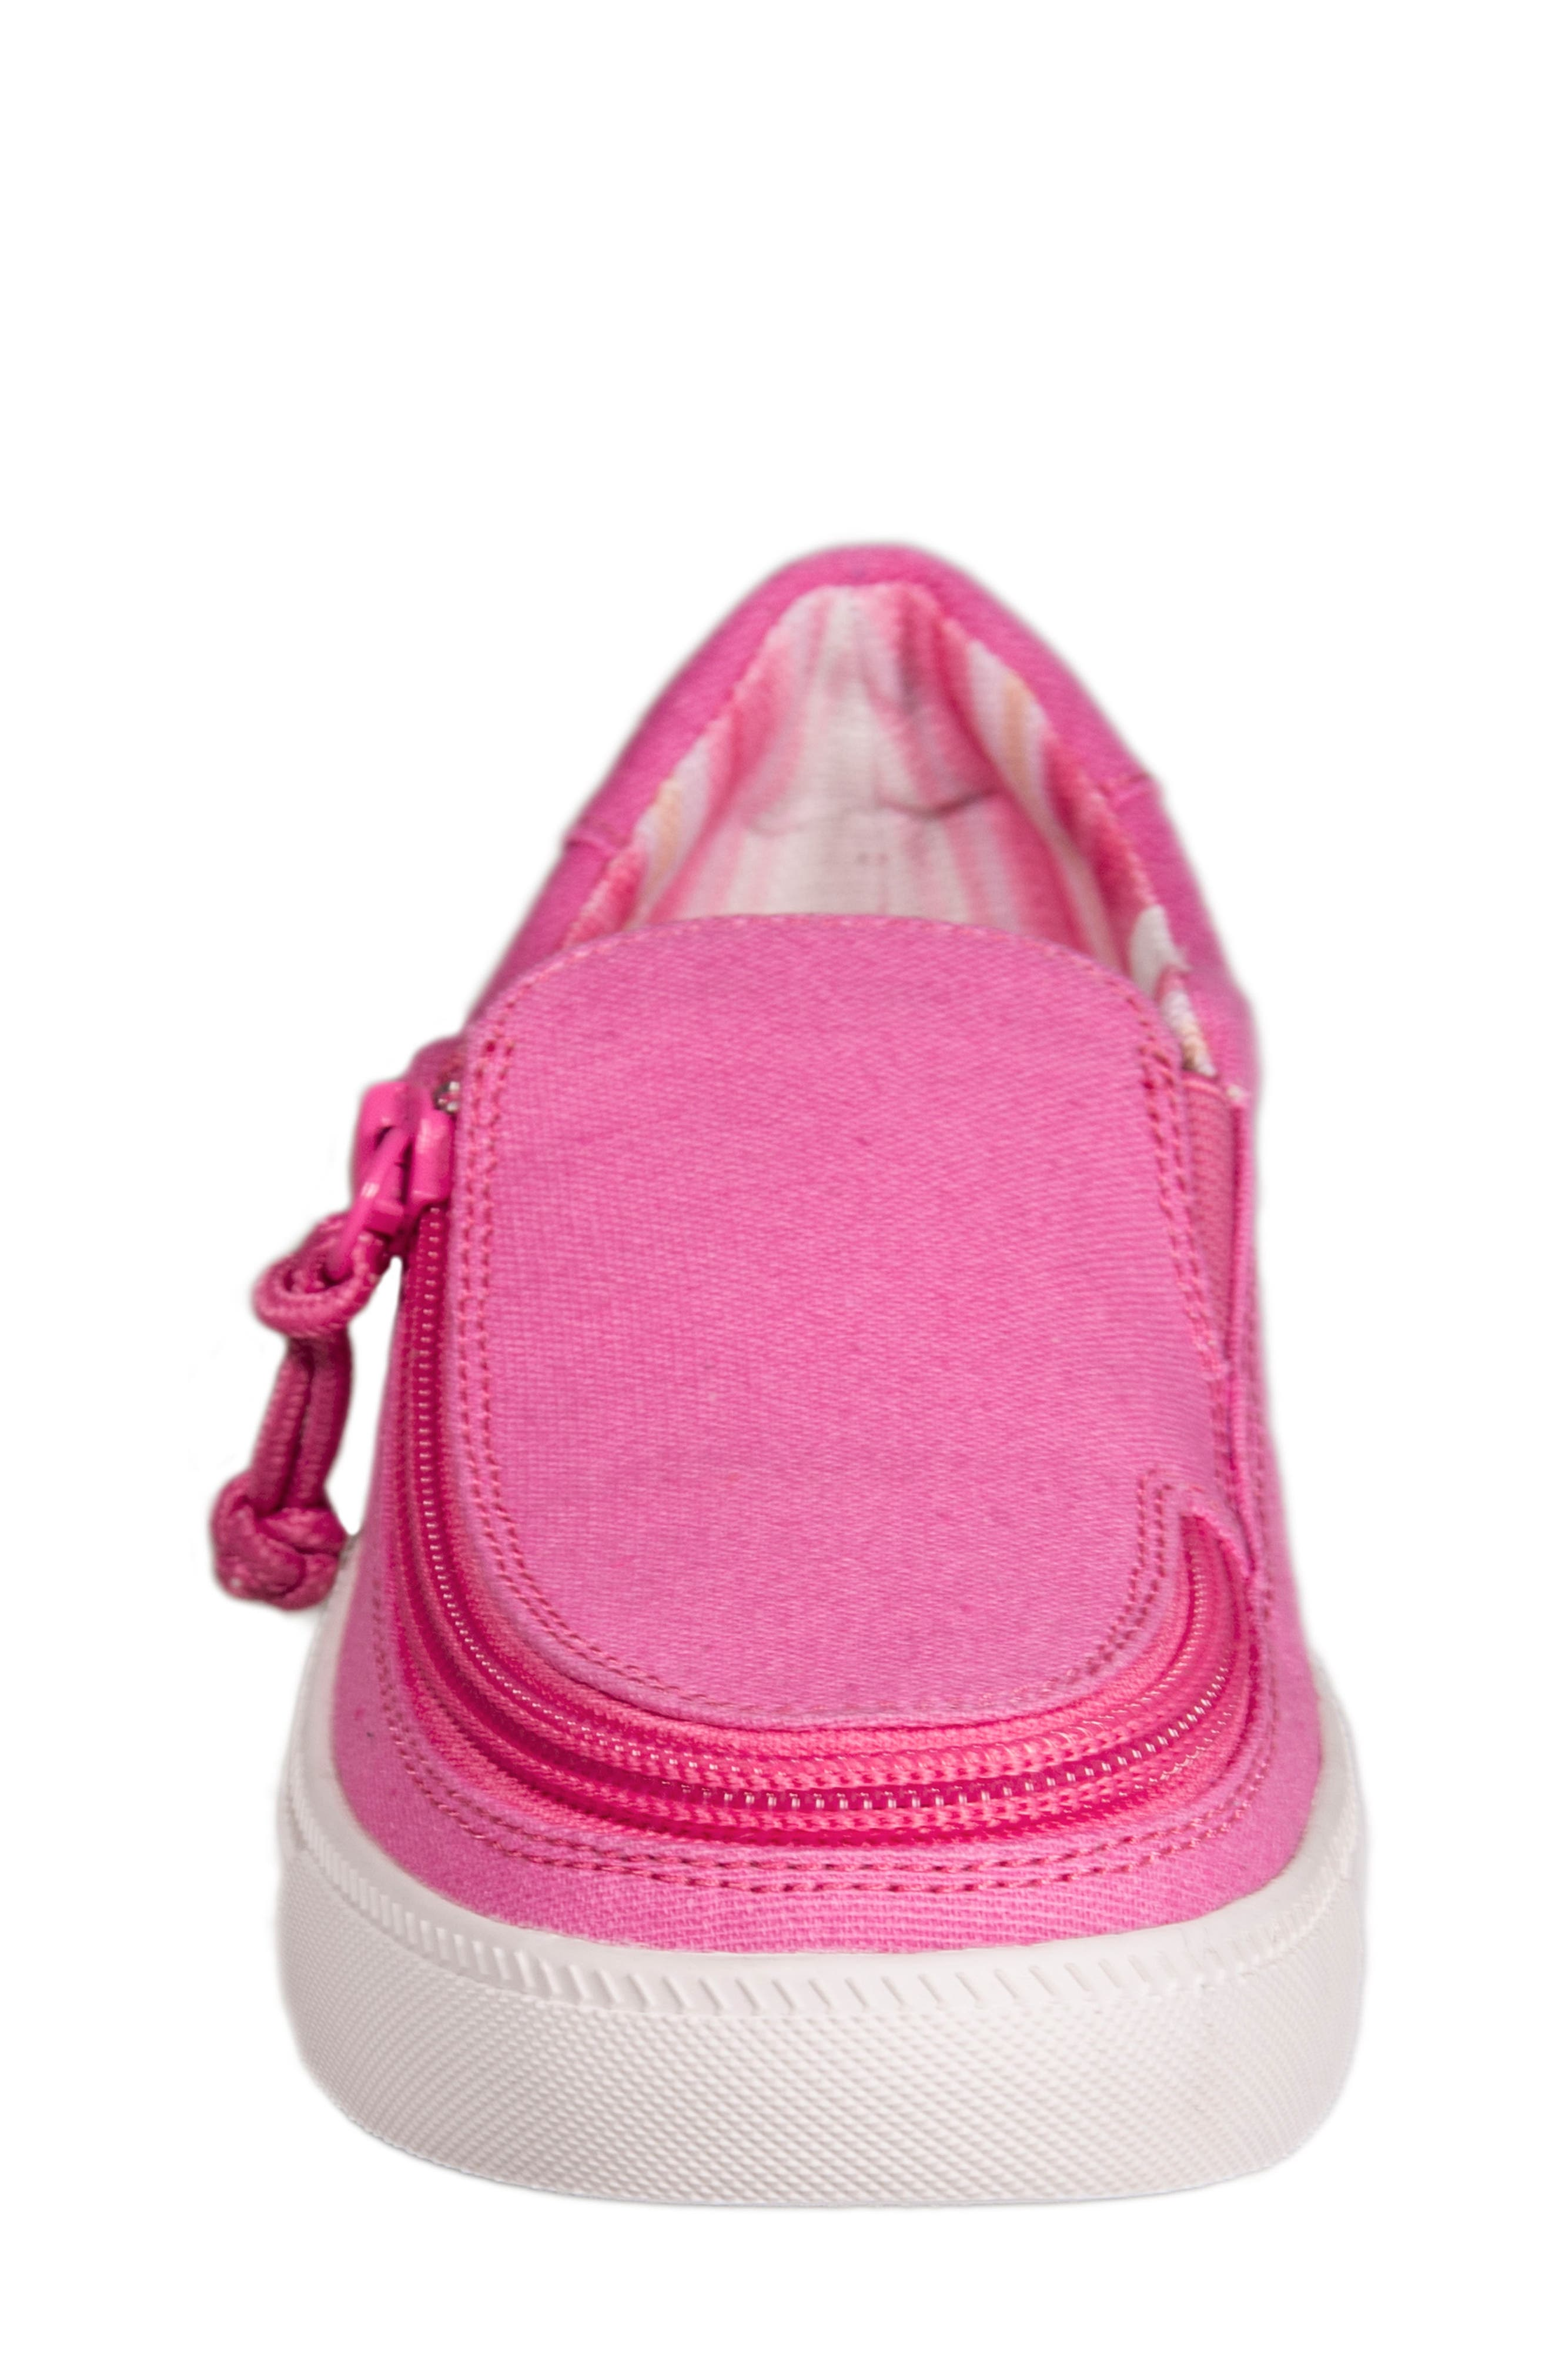 Alternate Image 3  - BILLY Footwear Zip Around Low Top Sneaker (Toddler, Little Kid & Big Kid)